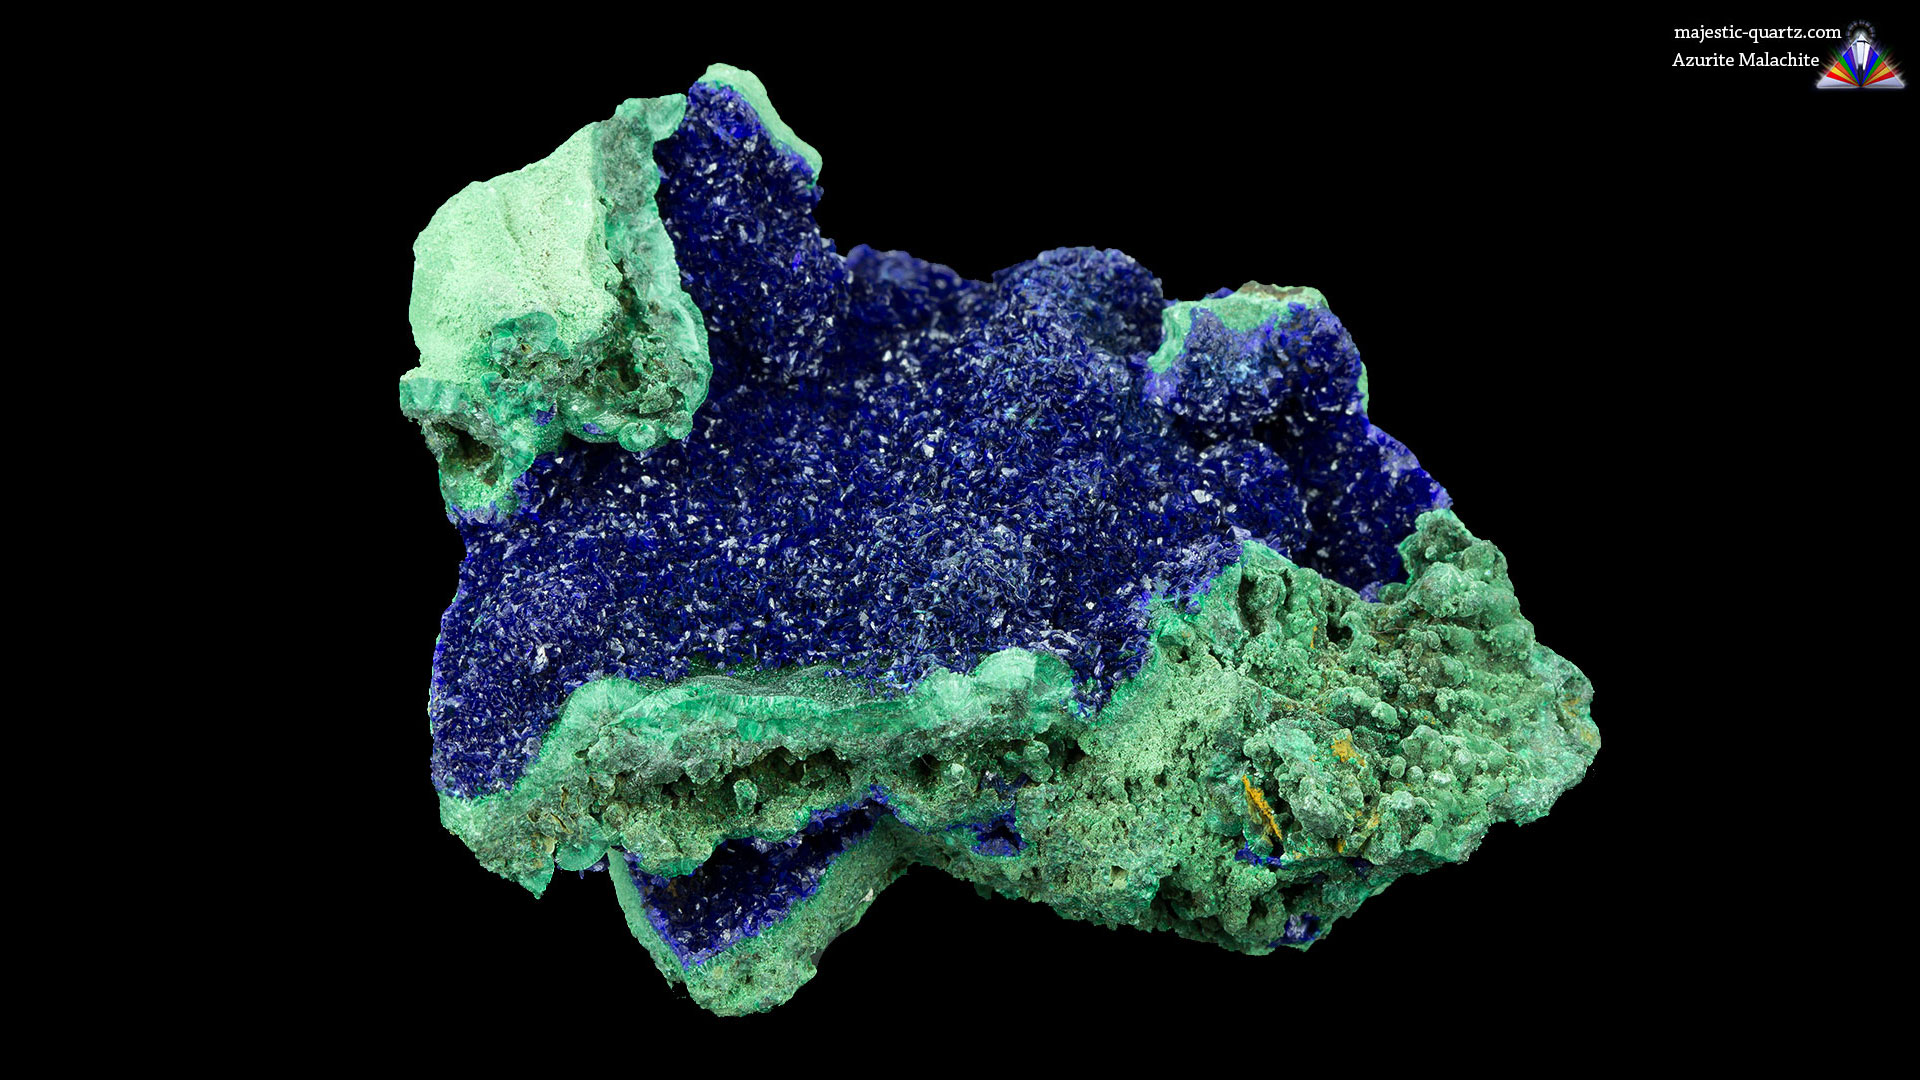 azurite malachite properties and meaning photos crystal information